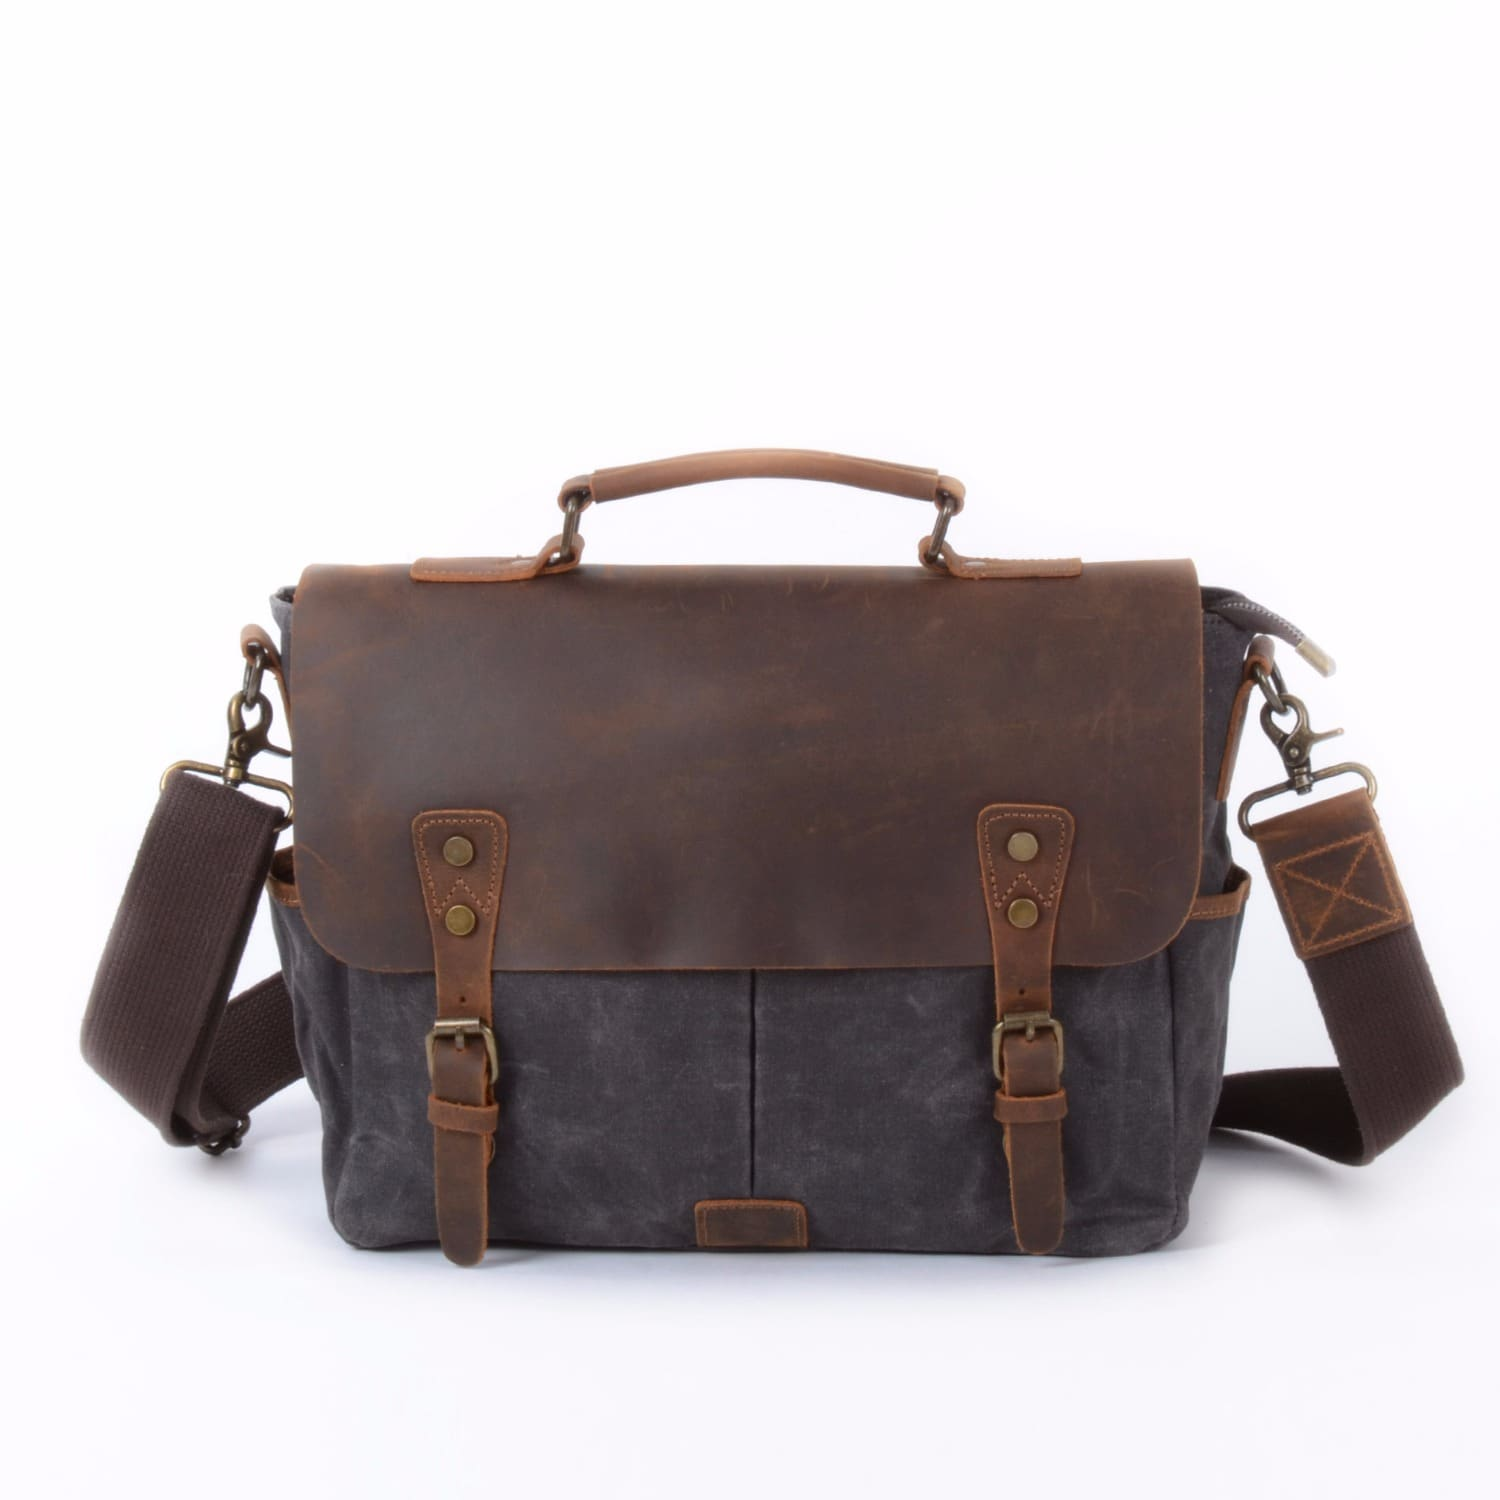 EAZO Leather DSLR Camera Bag Best Cheap Price Extremely Cheap Price JFfZ99JnvW